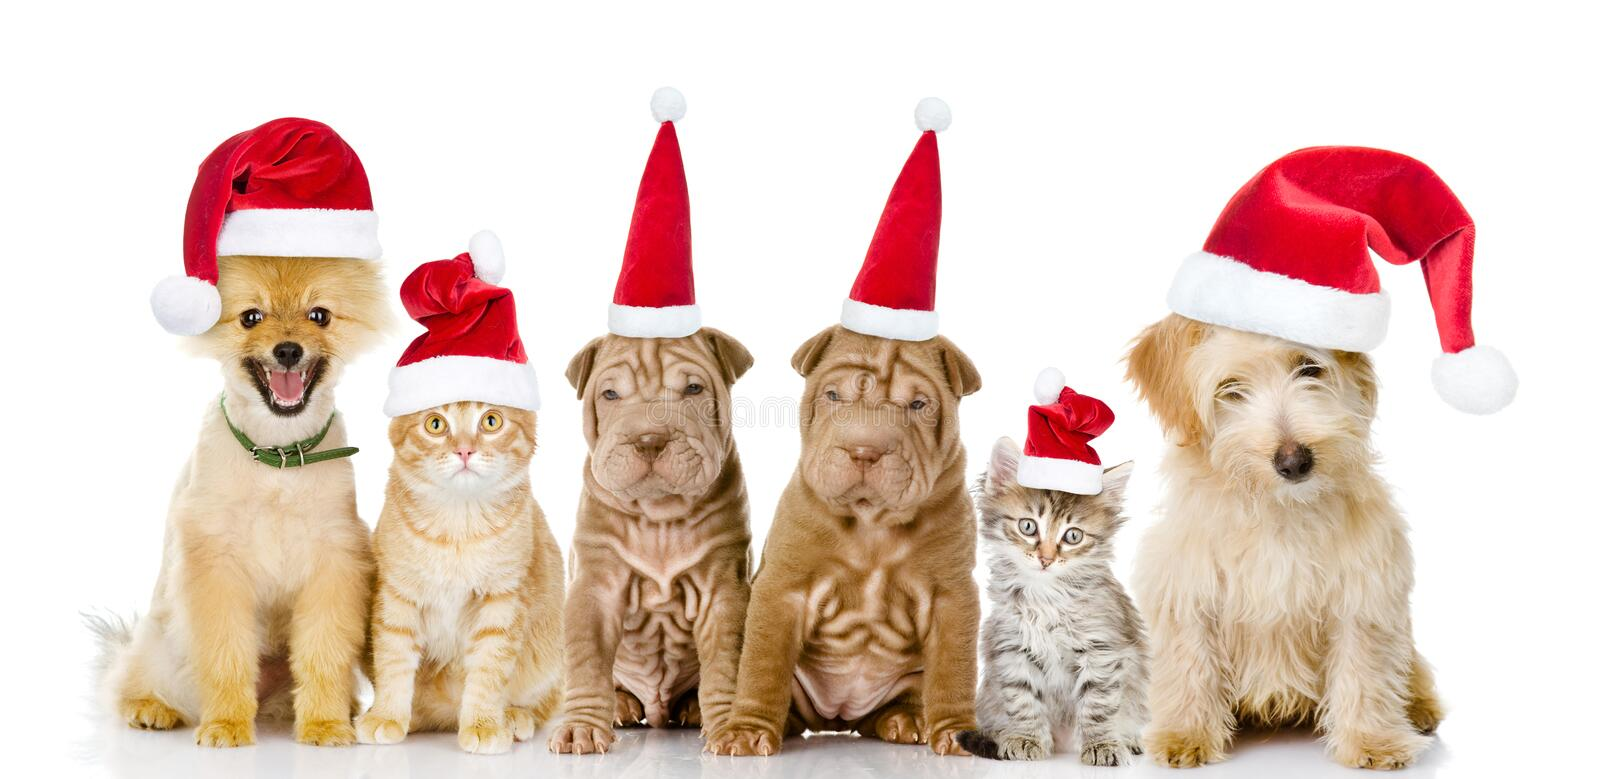 Group of cats and dogs in red christmas hats. isolated on white. Background royalty free stock image